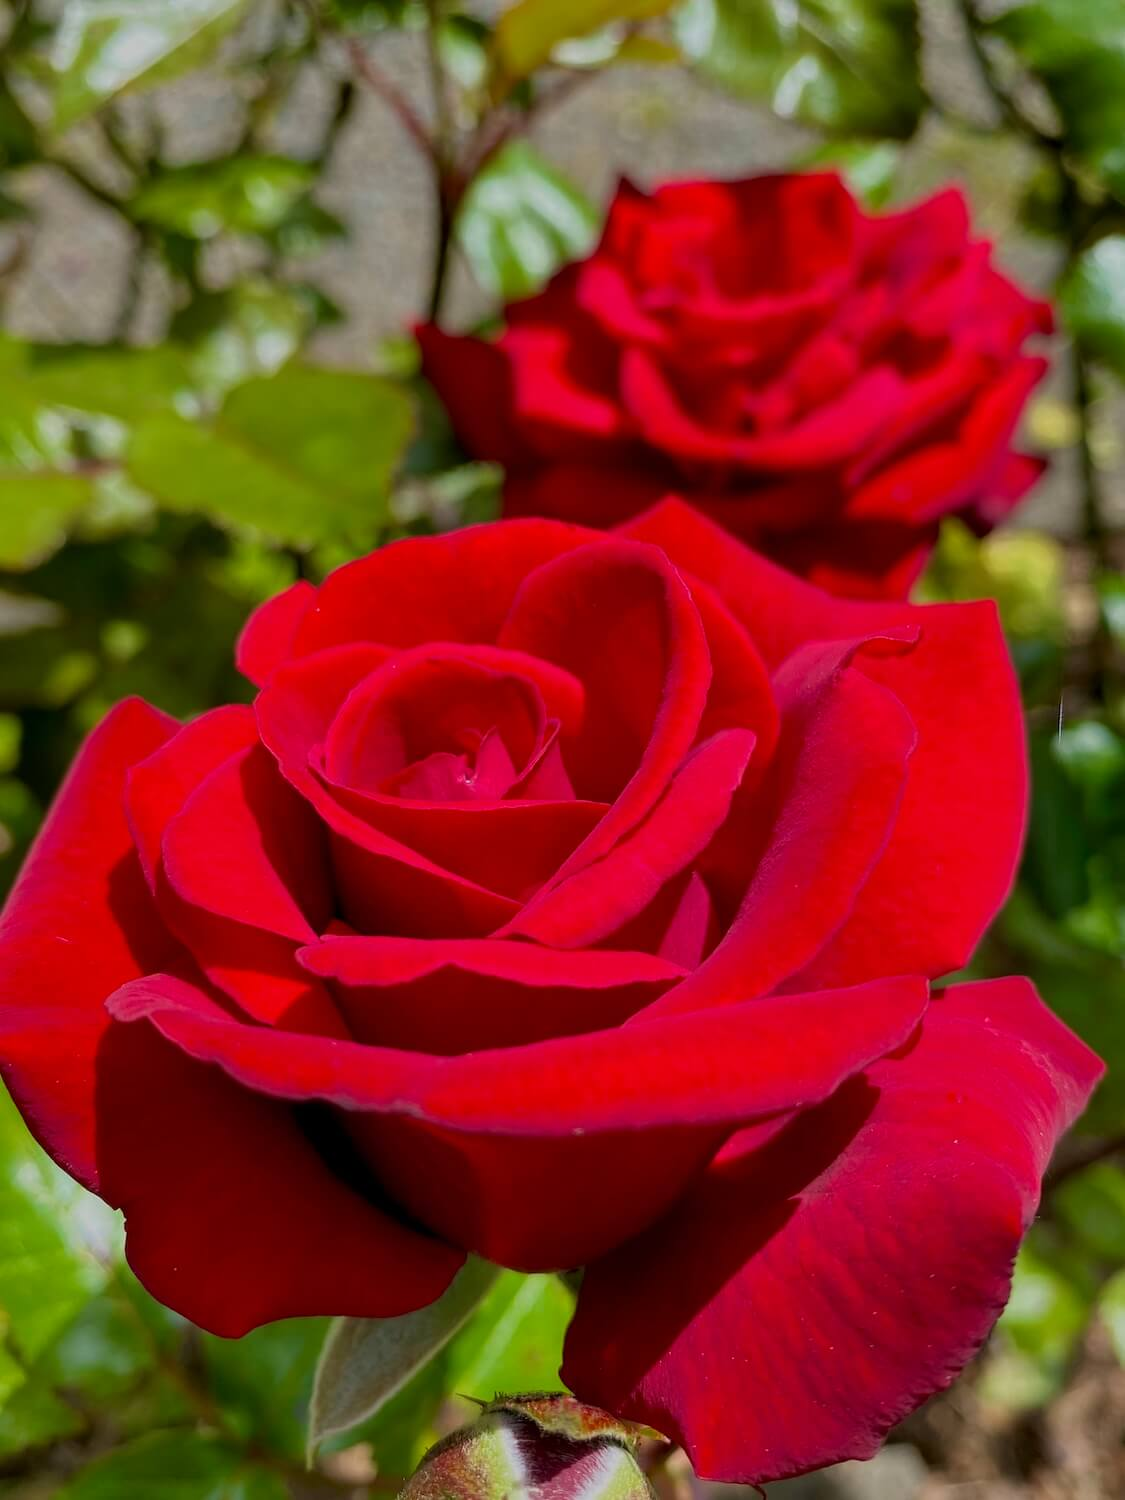 Two bright red roses shine in the sun around green foliage.